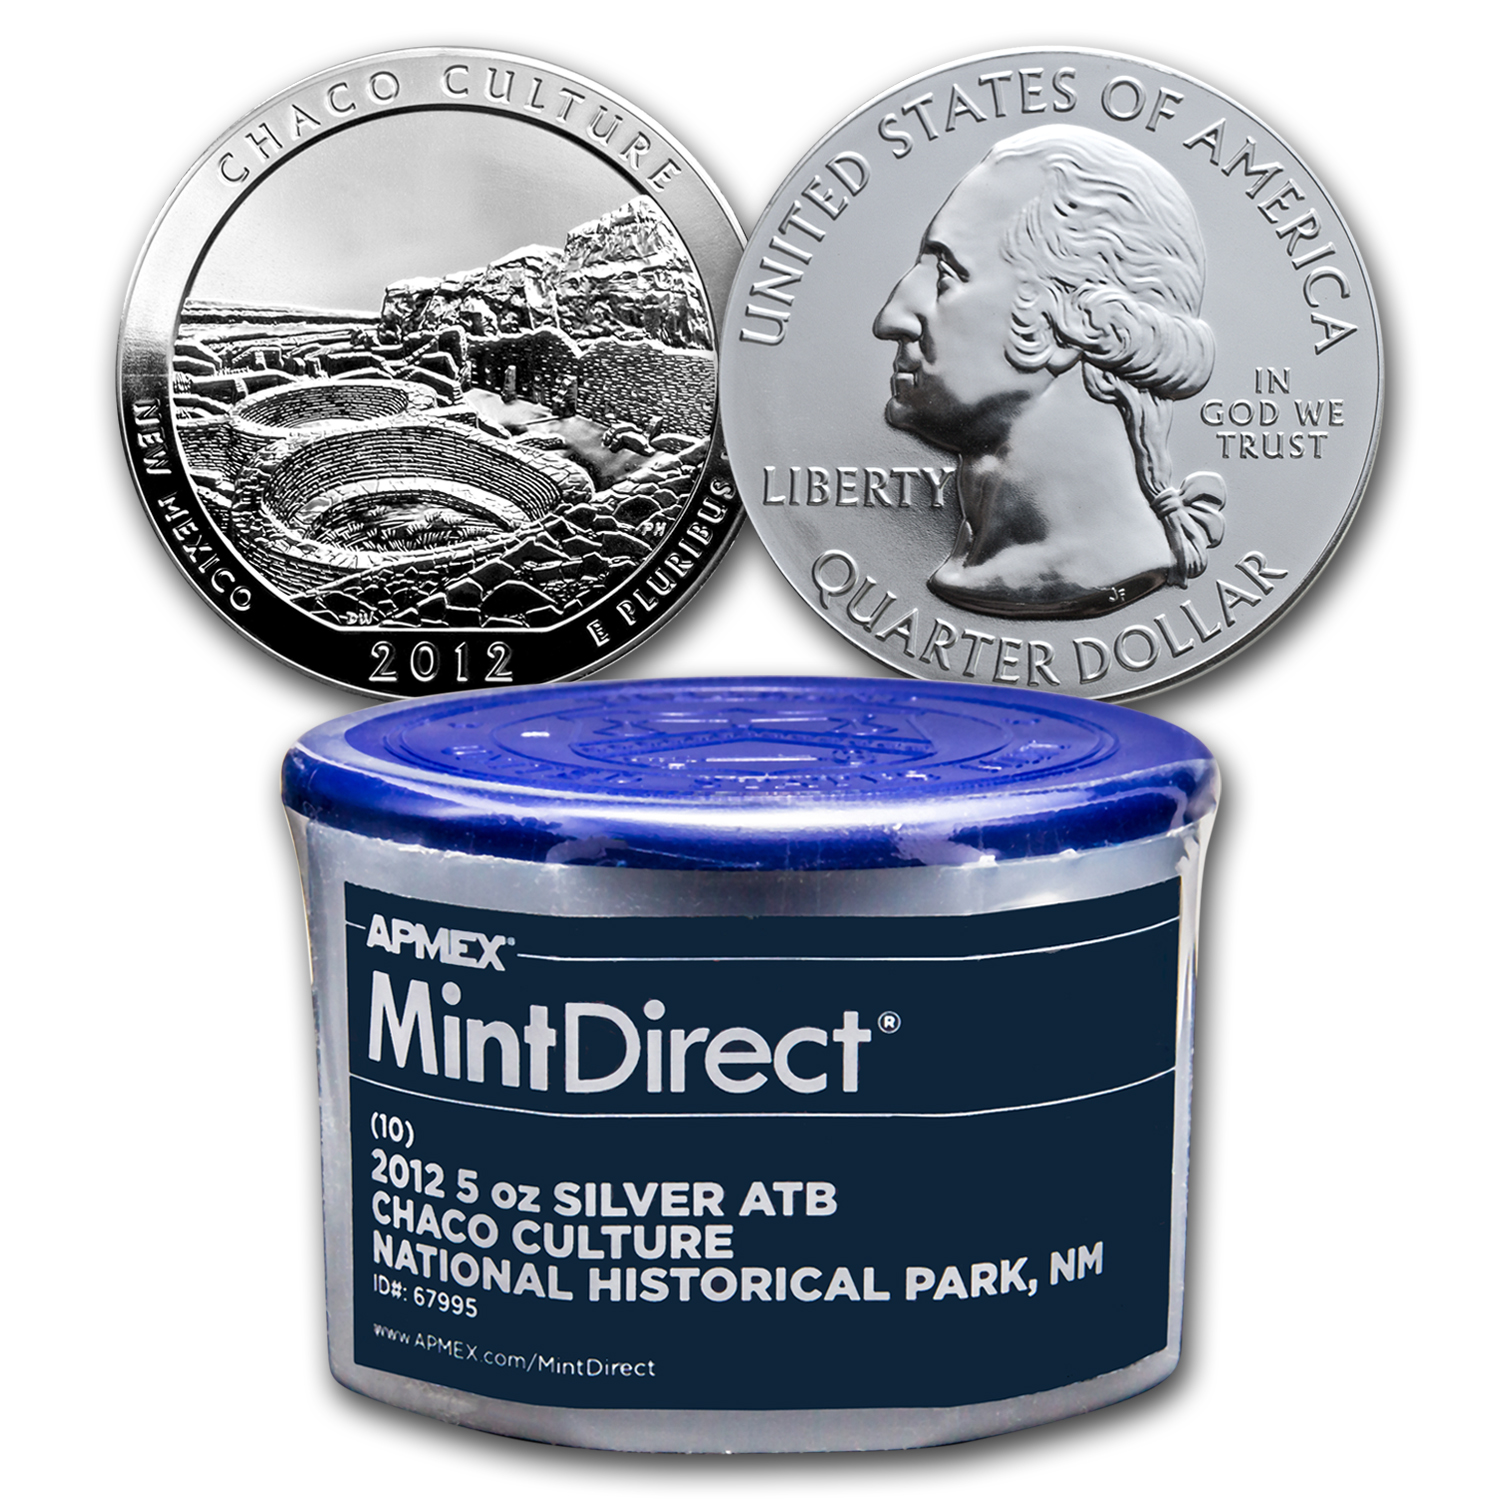 2012 5 oz Silver ATB Chaco Culture, NM (10-coin MintDirect®)